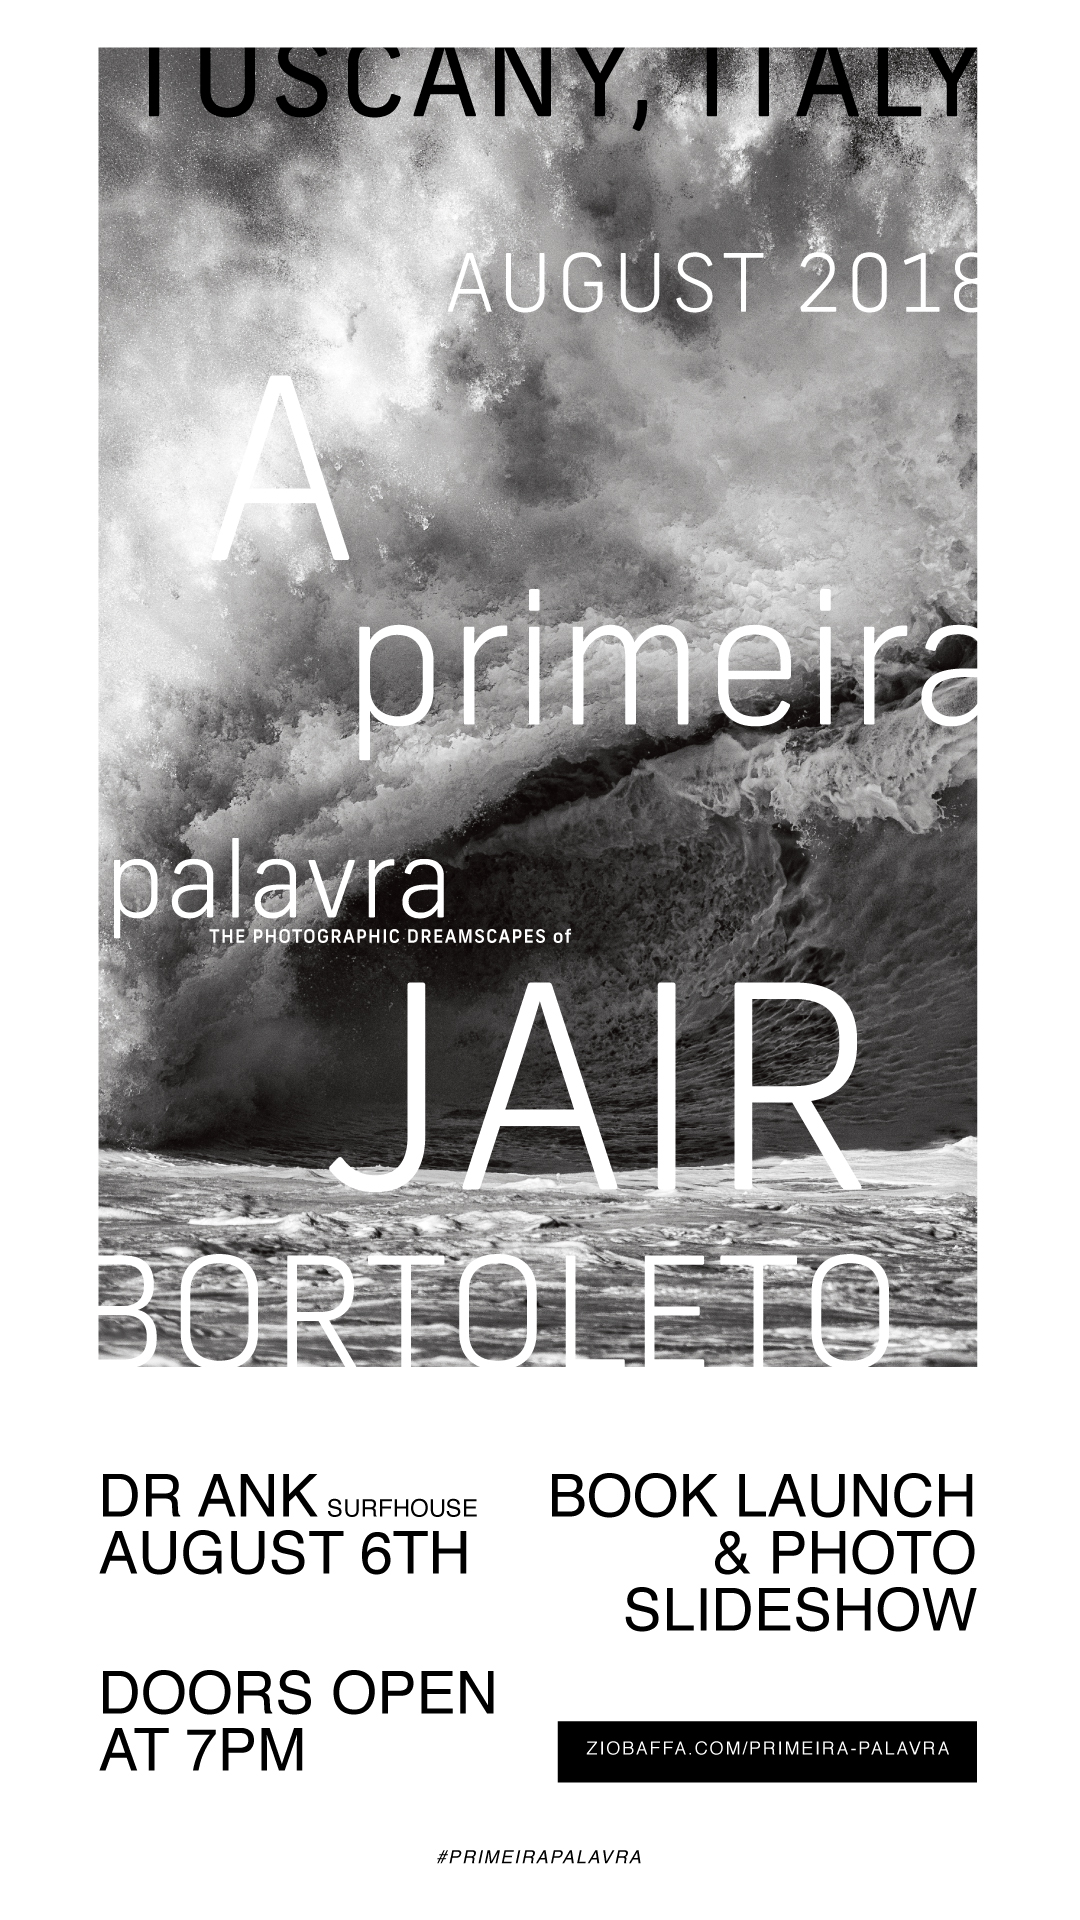 A PRIMEIRA PALAVRA THE PHOTOGRAPHIC DREAMSCAPES OF JAIR BORTOLETO